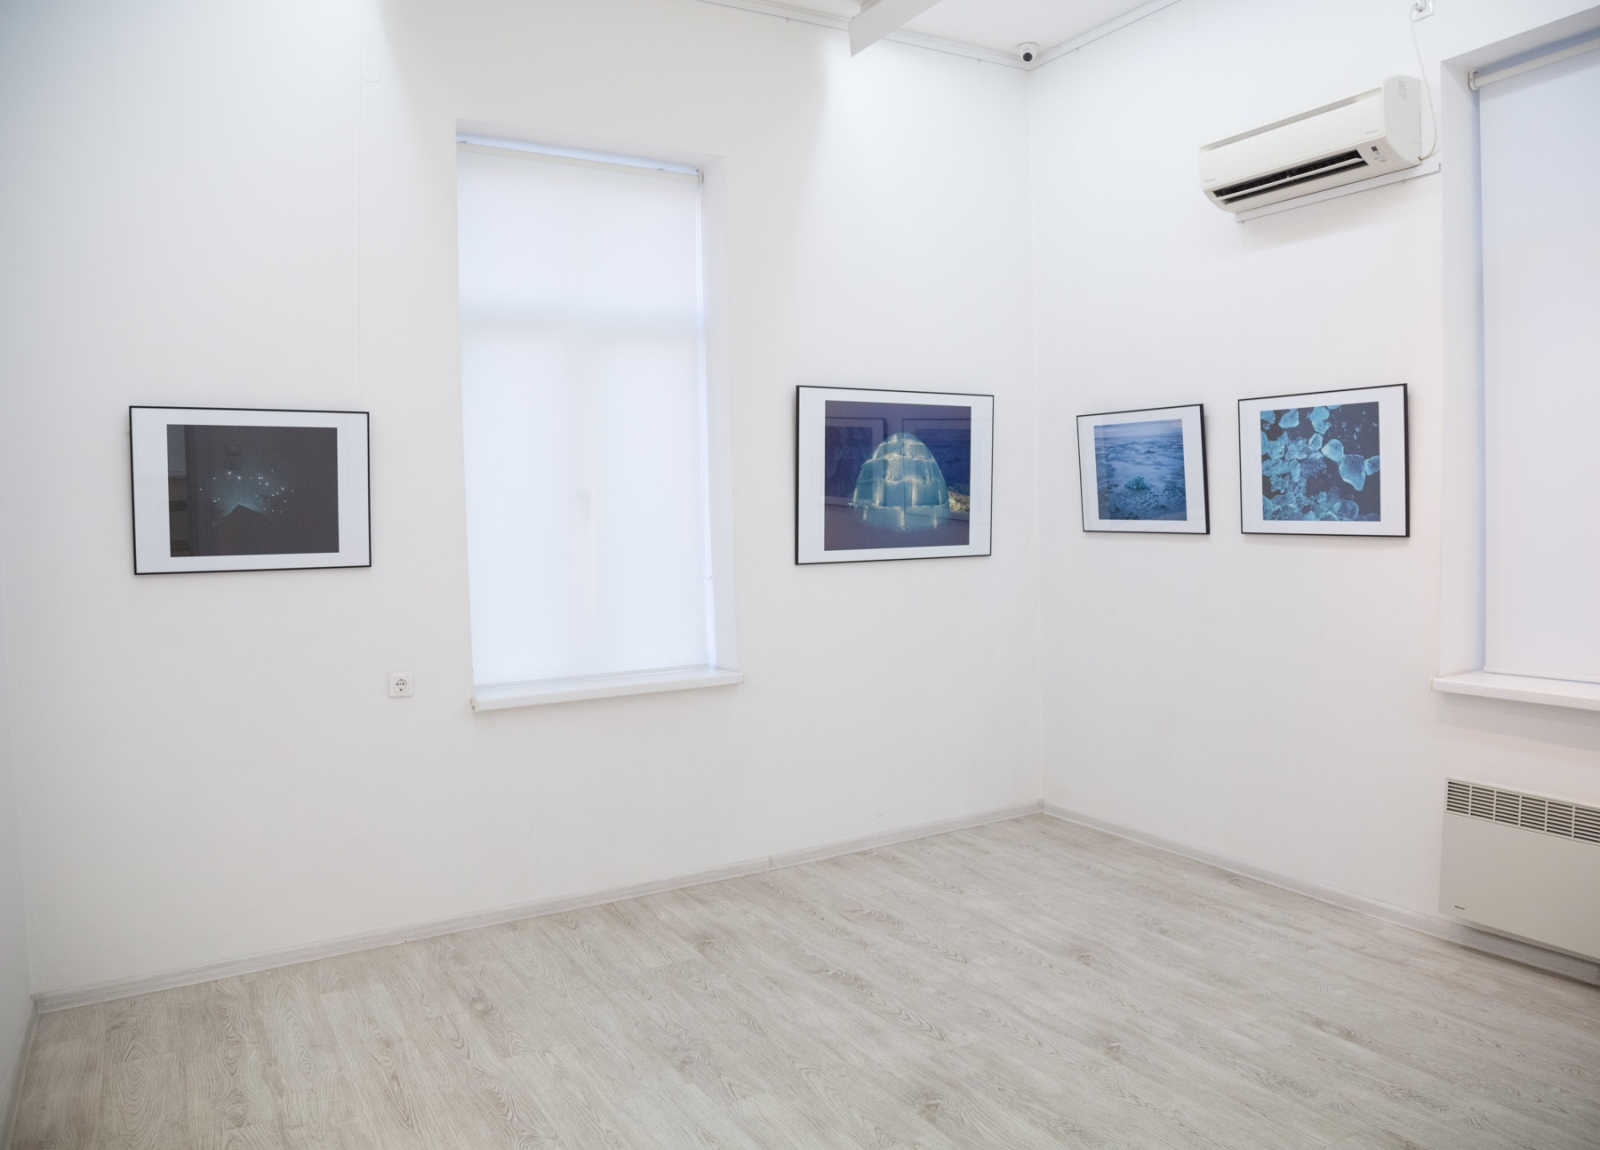 Polaris Solo Exhibition Gallery Synthesis, Sofia, Bulgaria October 2017